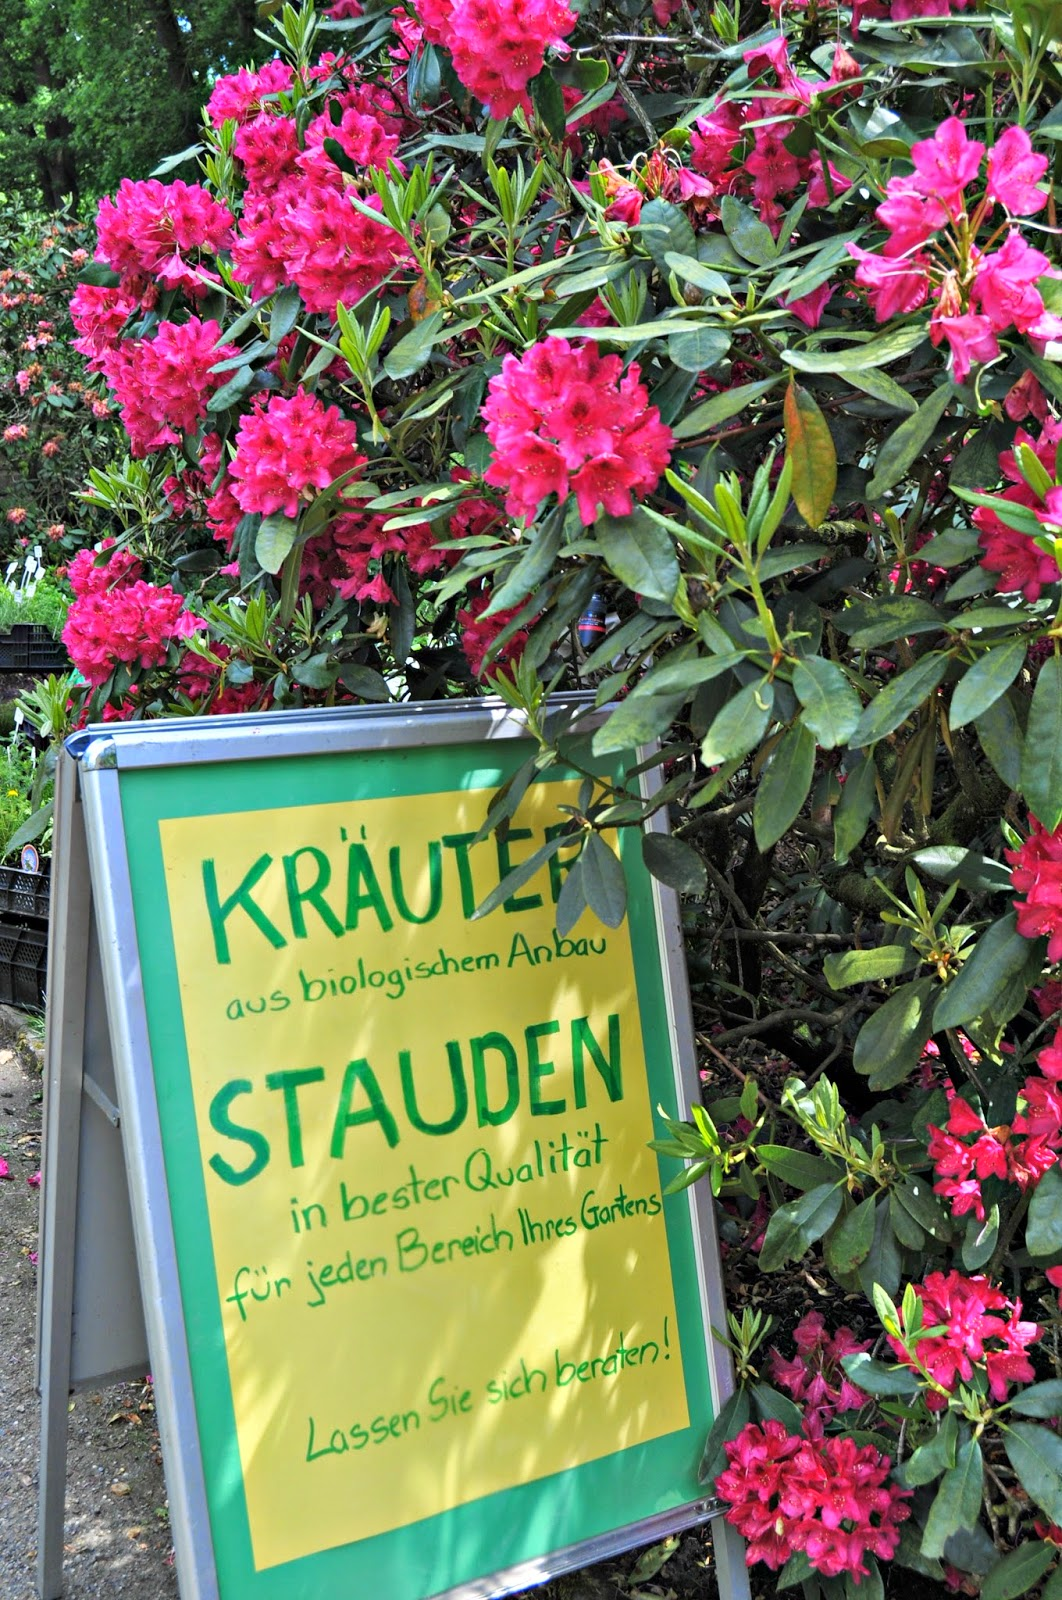 sign at the entrance of the flowers' market advertising herbs of the best quiality